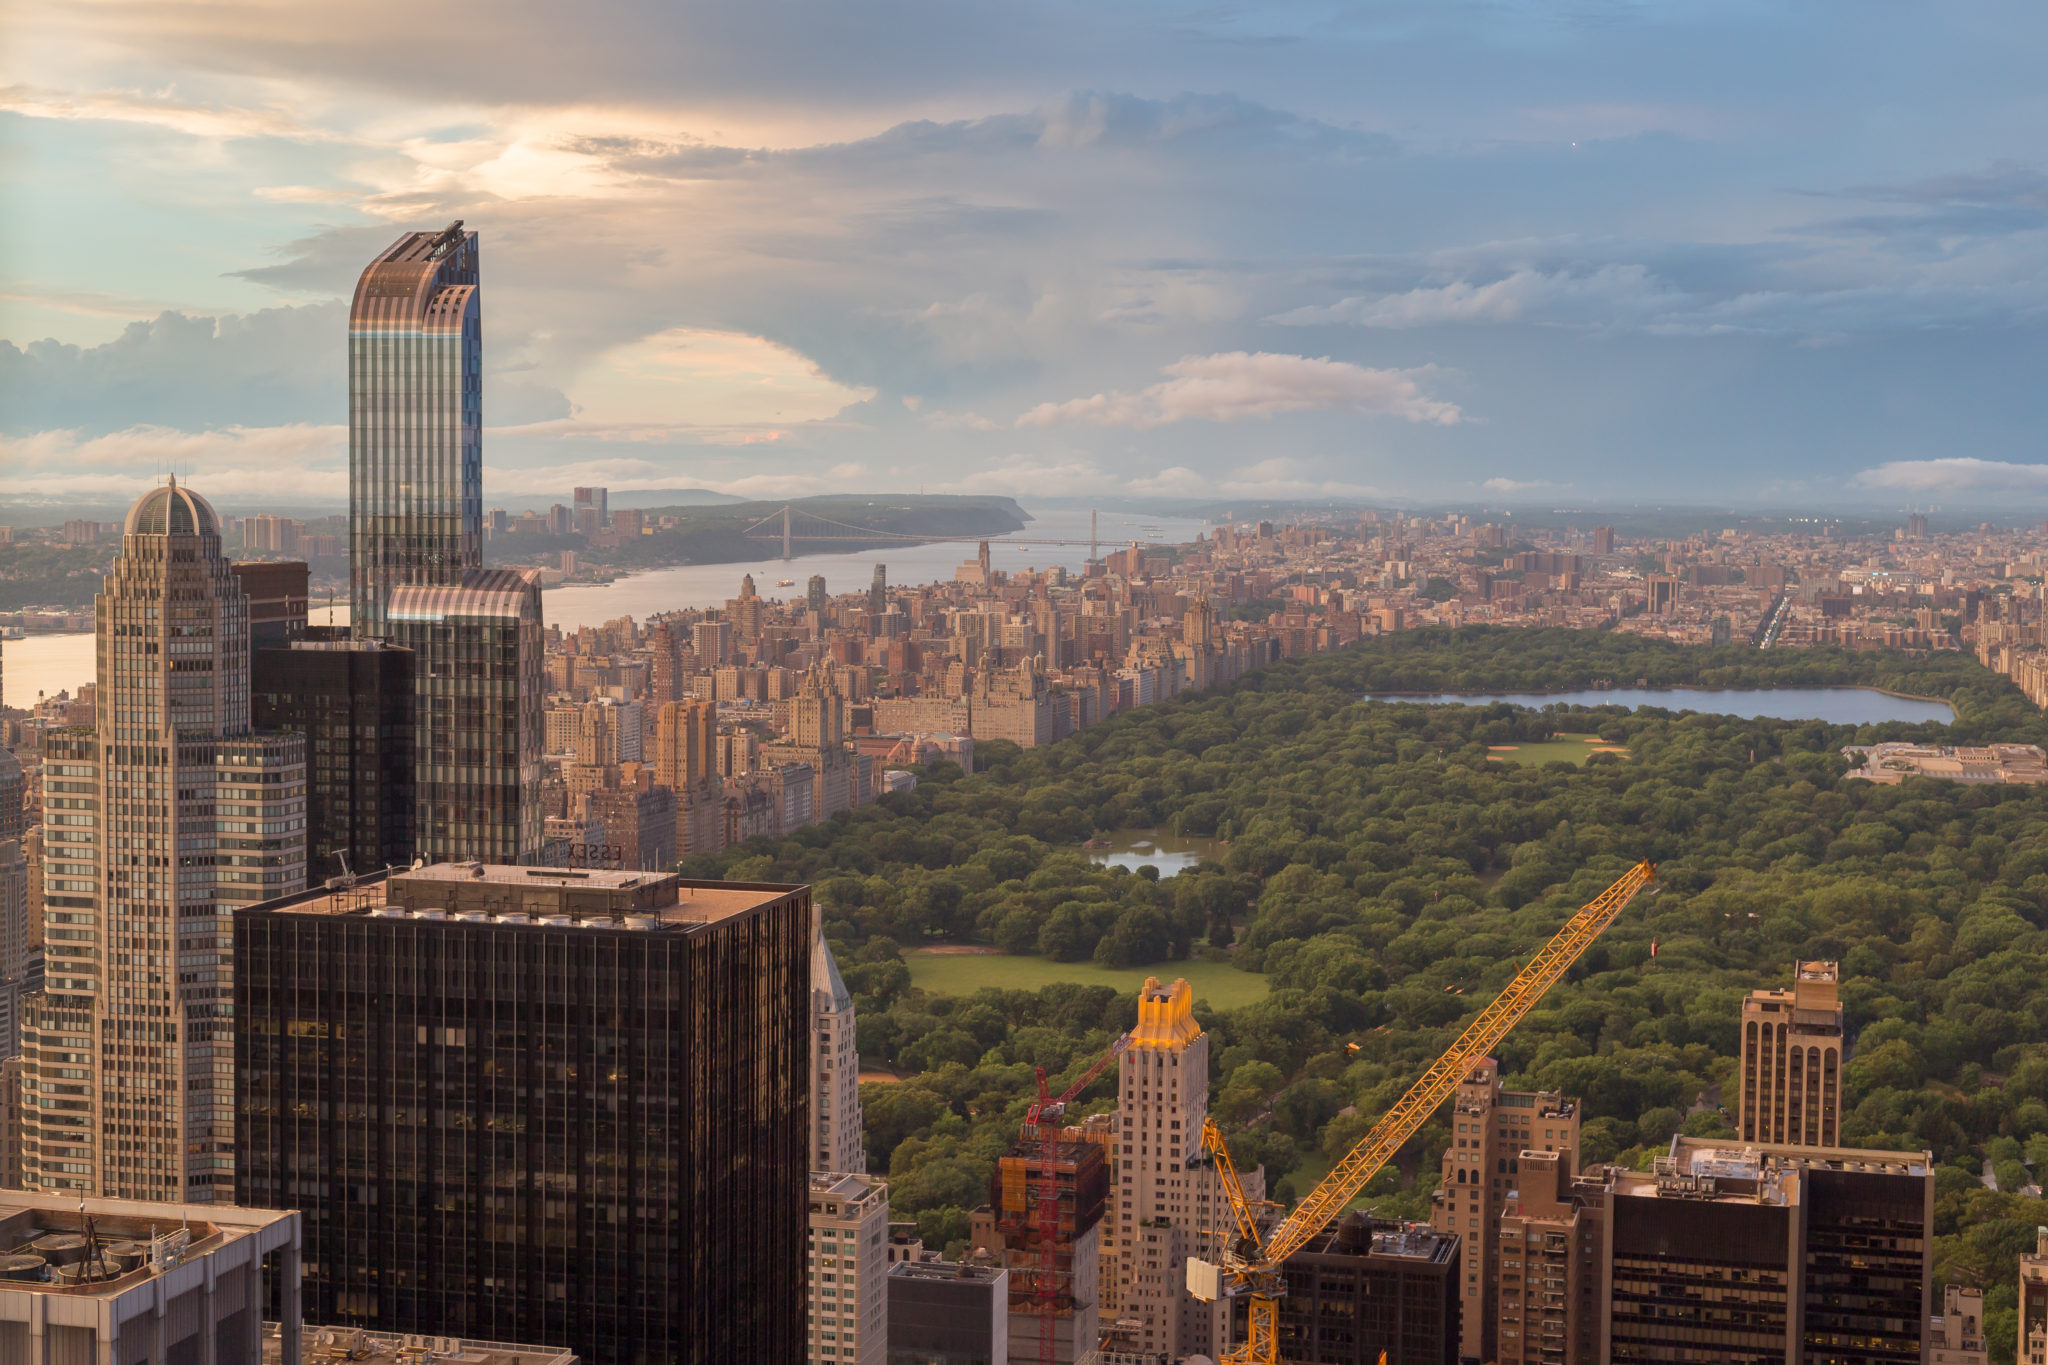 View of New York city & Central Parc from the top of the Rockefeller